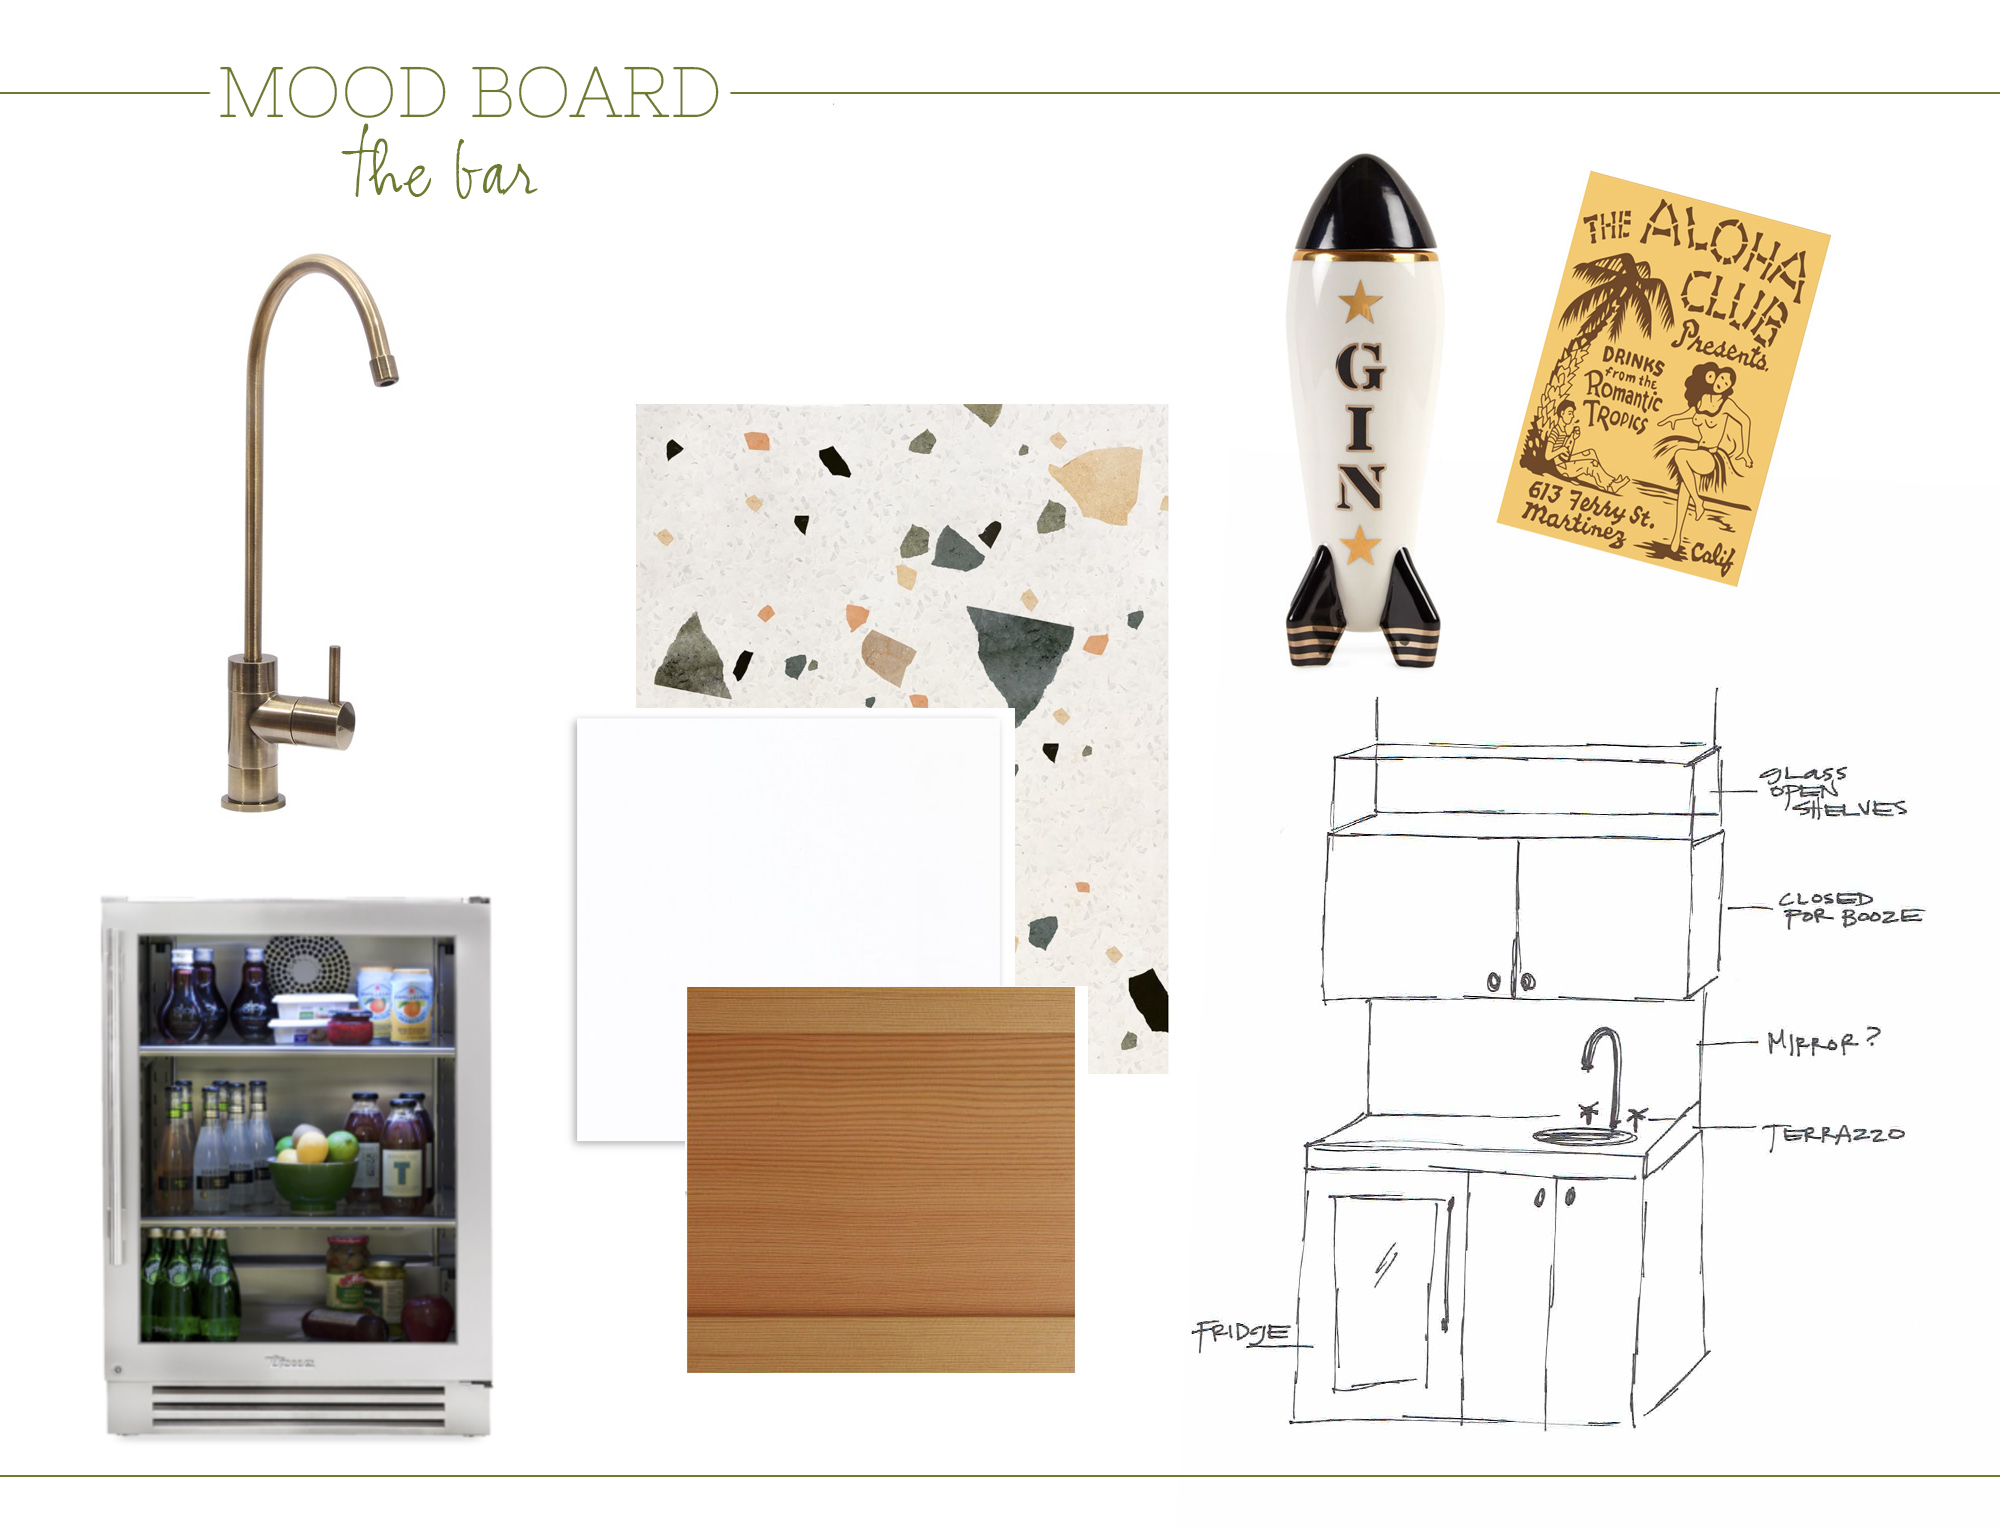 ALI HEDIN MOOD BOARD | WEEKNIGHT PARTY HOUSE BAR